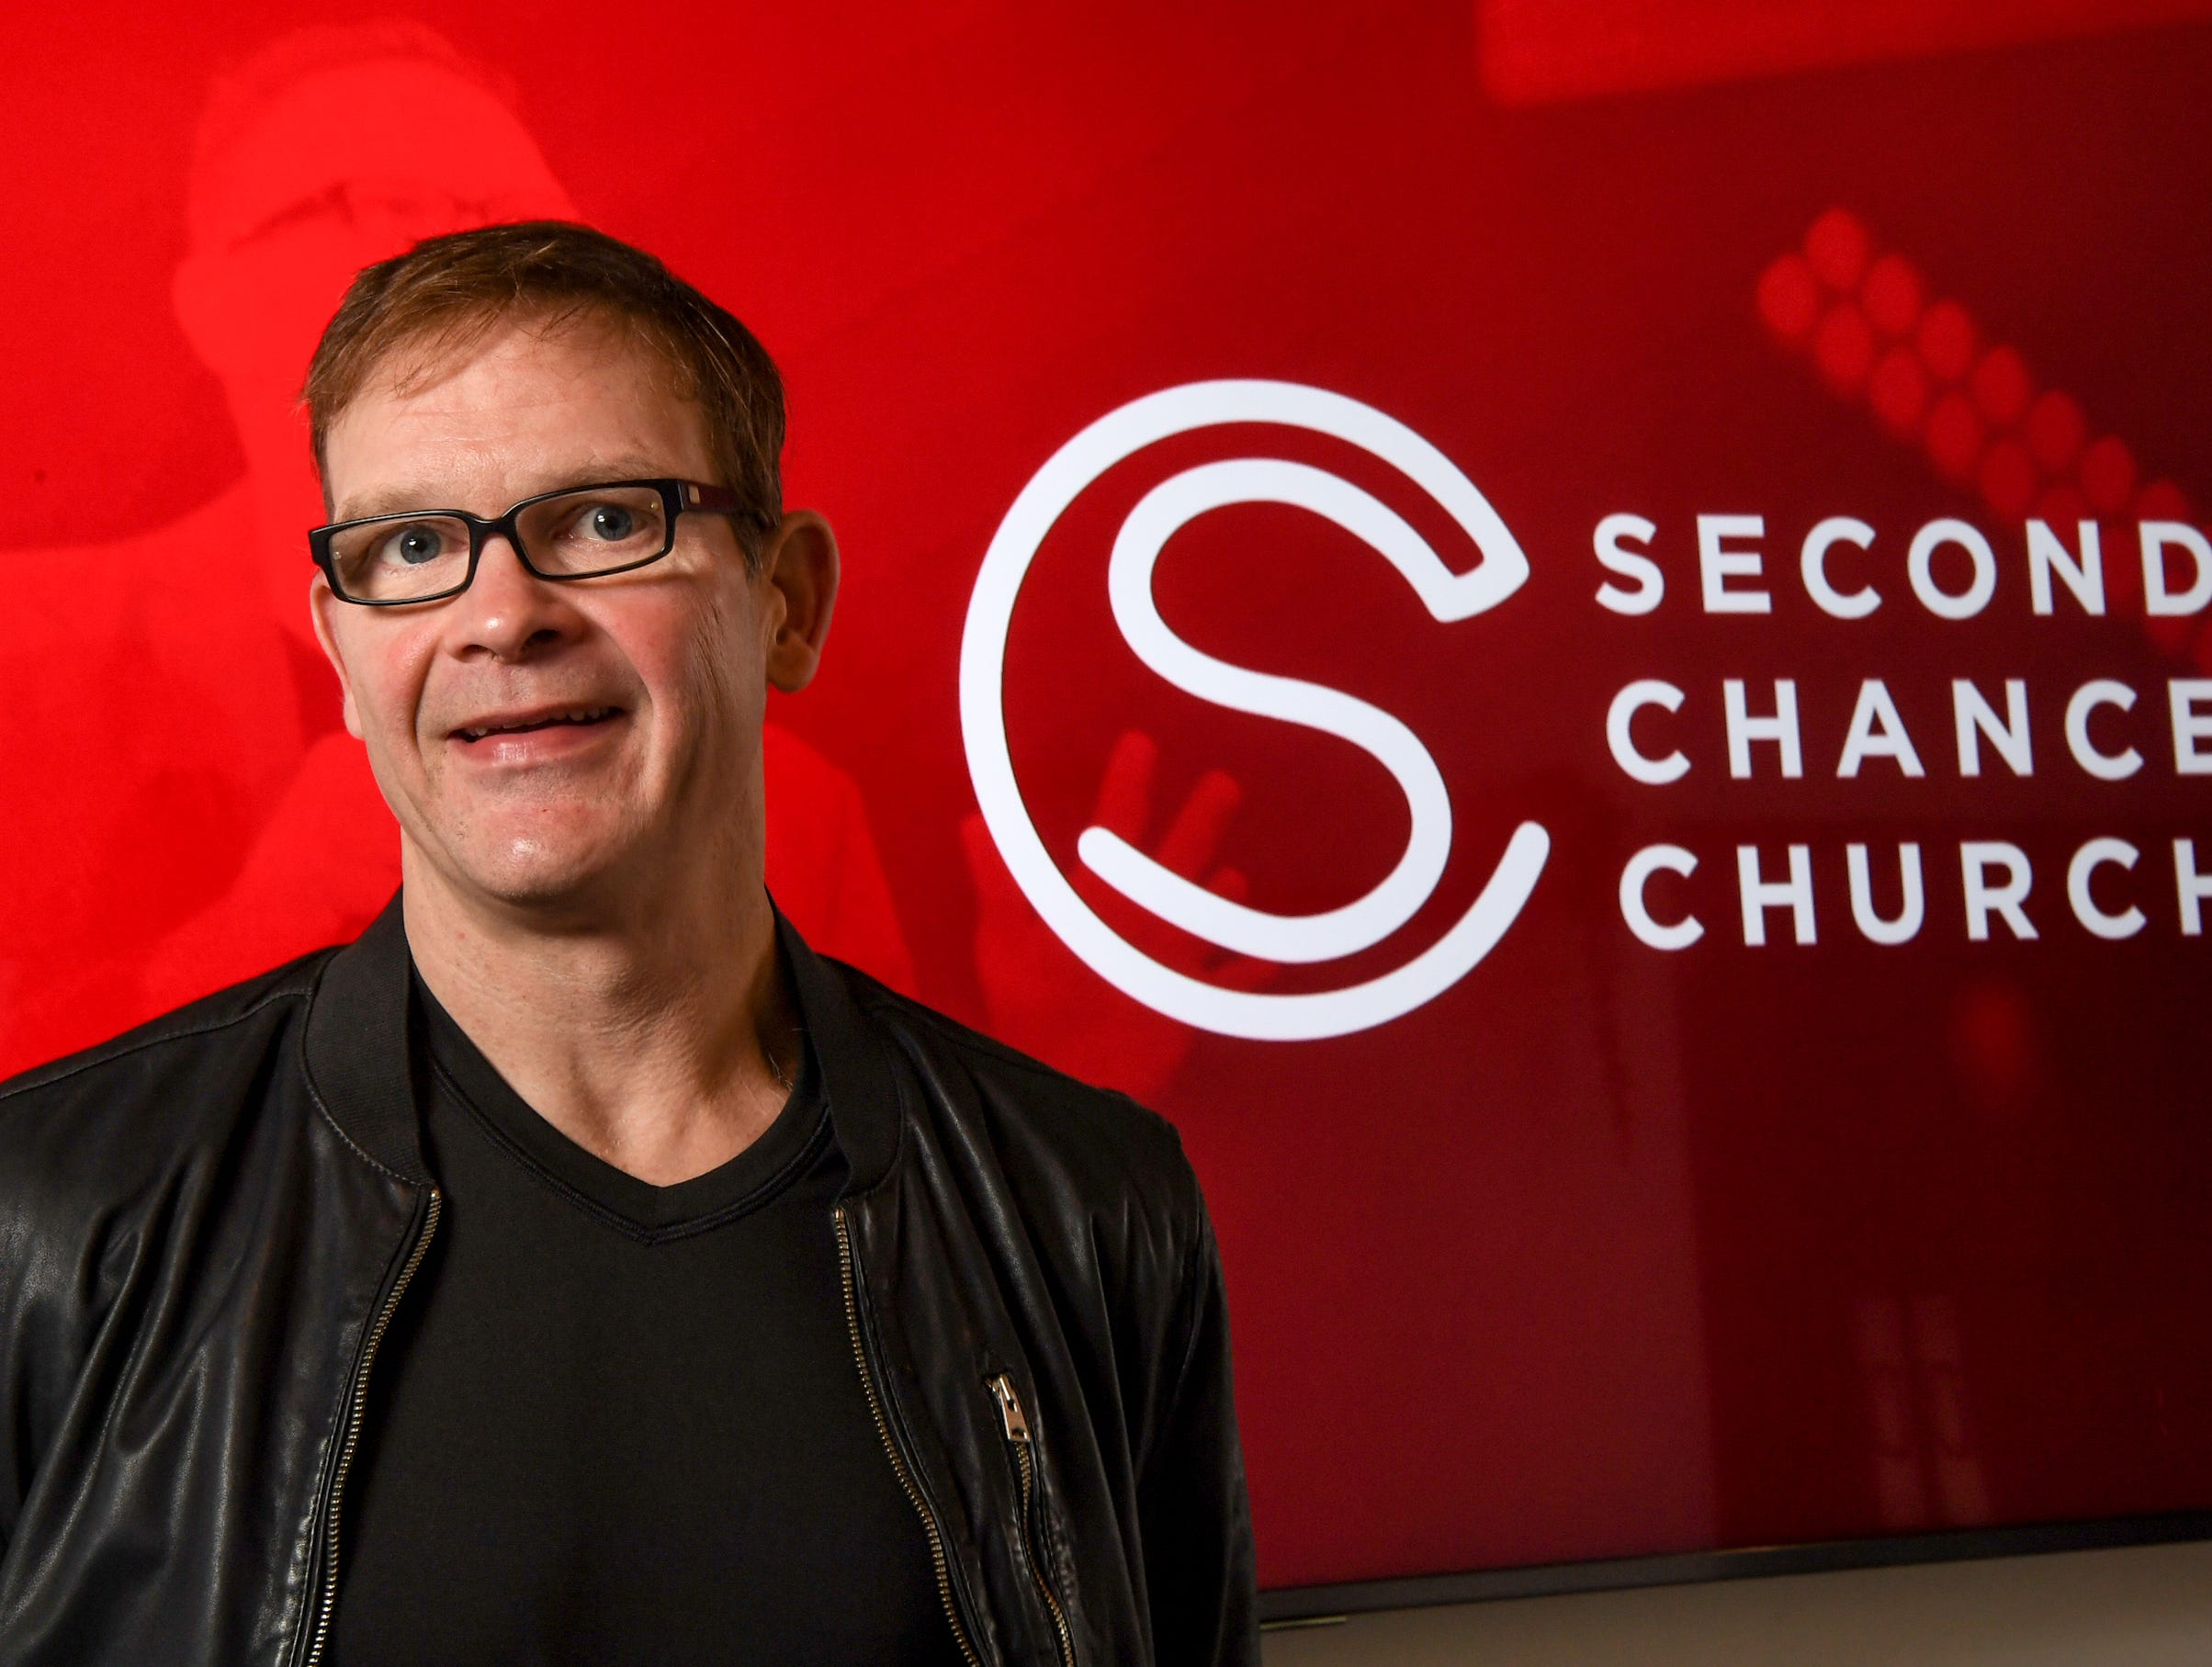 Perry Noble speaks about the beginning of Second Chance Church at 140 Commons Parkway in Anderson on January 27.